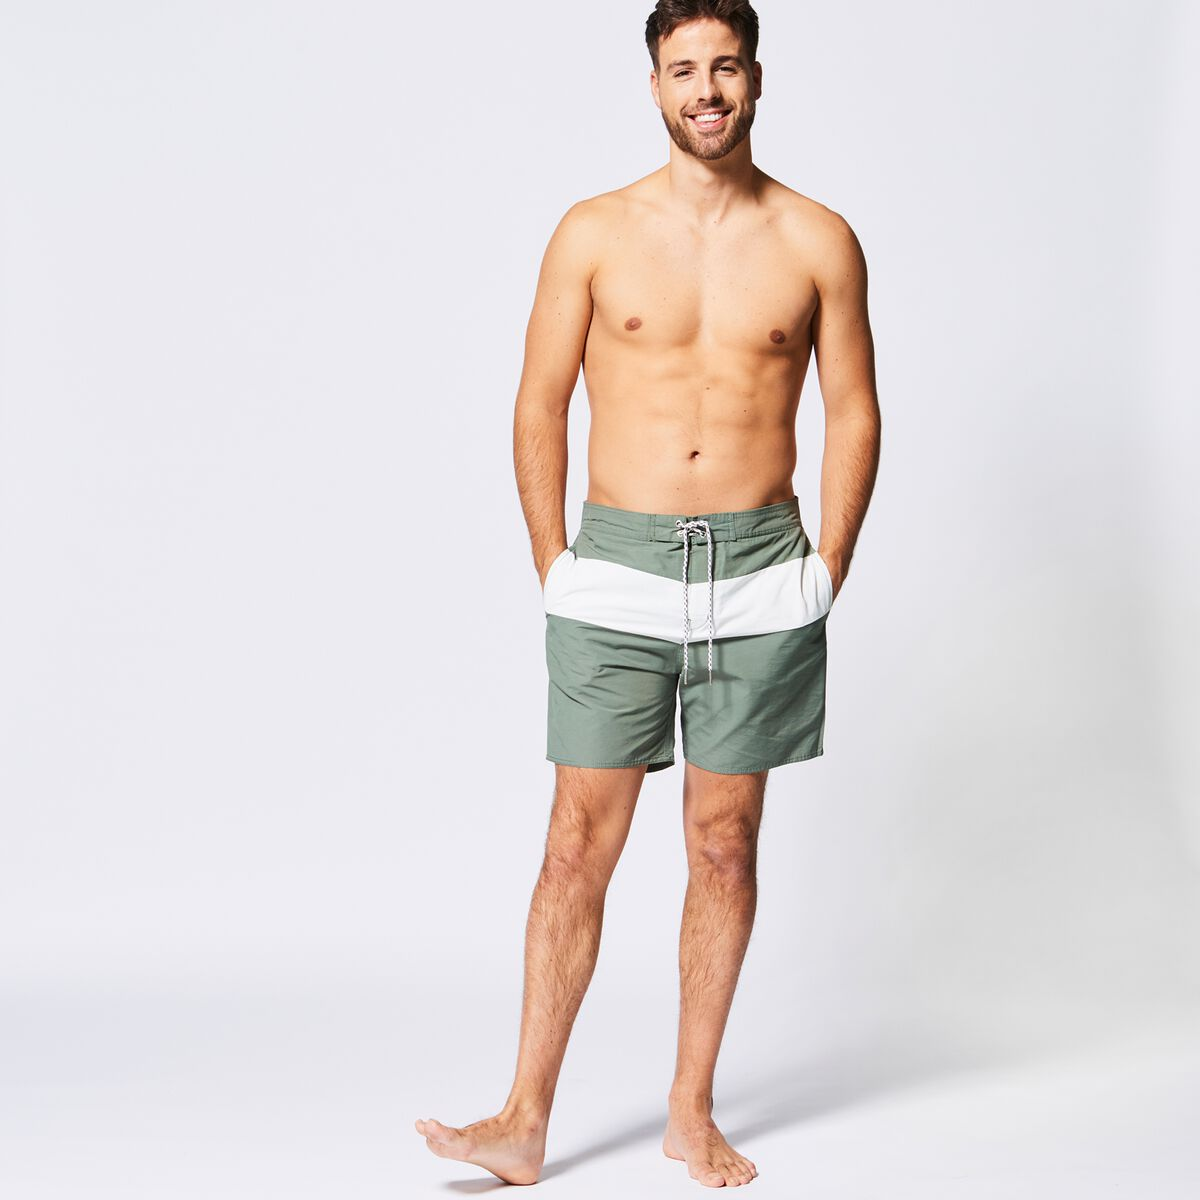 797f525915 Men Swimming trunks Arlington Green Buy Online